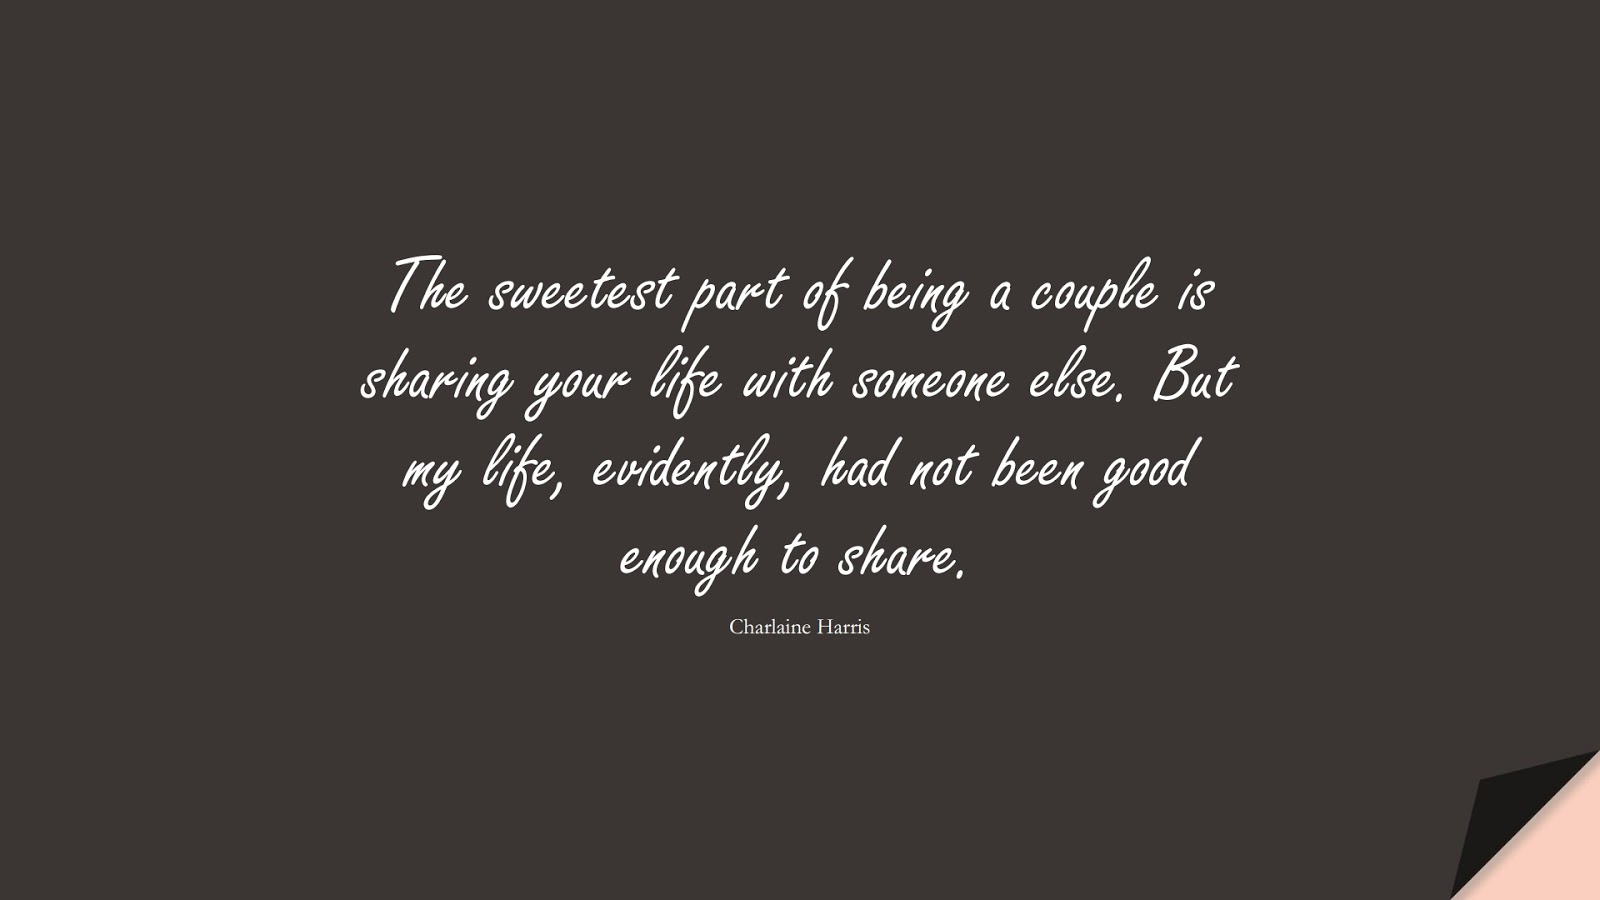 The sweetest part of being a couple is sharing your life with someone else. But my life, evidently, had not been good enough to share. (Charlaine Harris);  #SadLoveQuotes